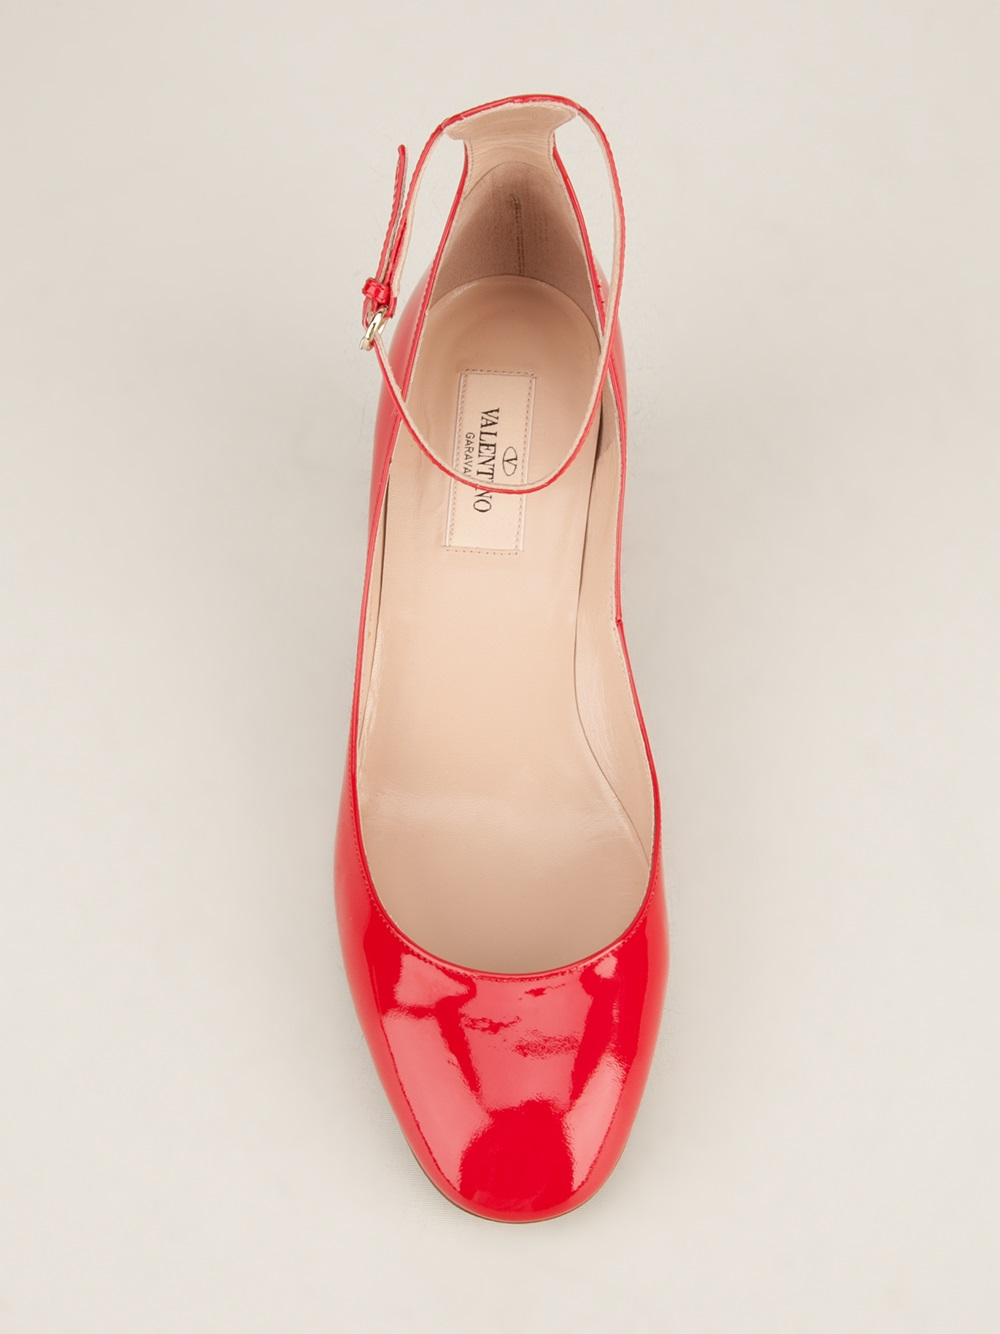 Shoes Stores Valentino